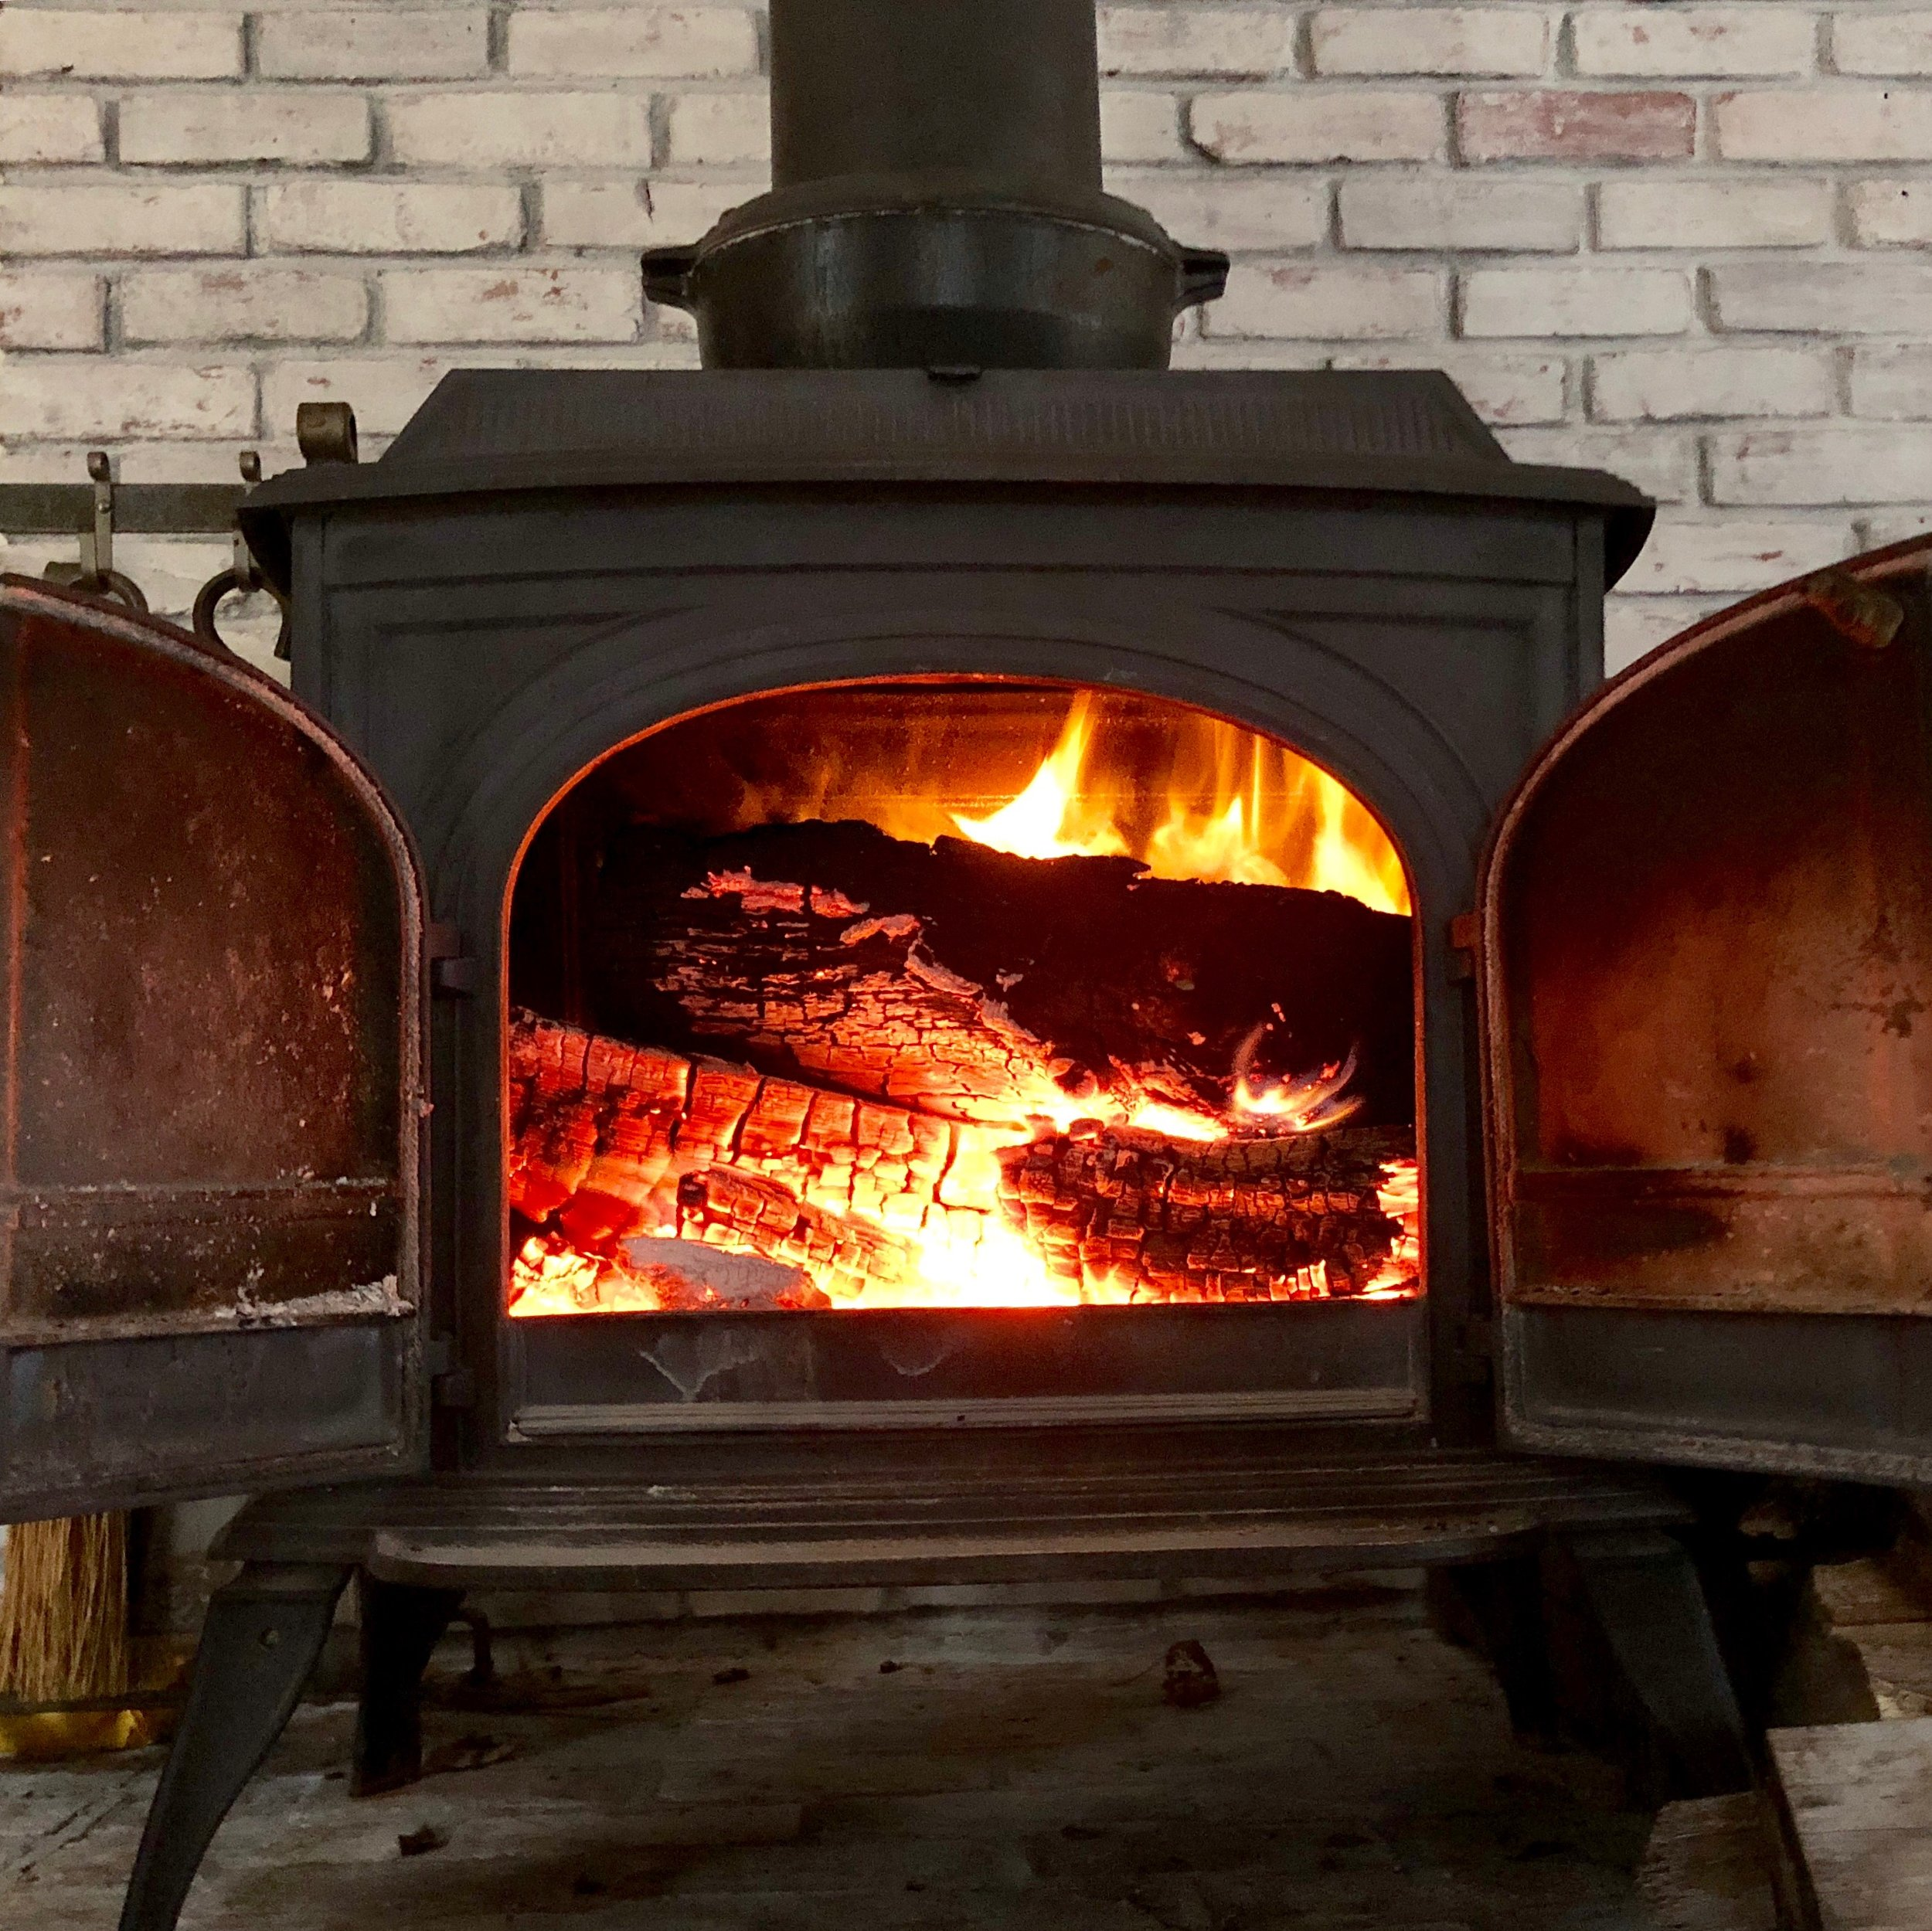 The wood stove kept me warm, from Friday through Monday.